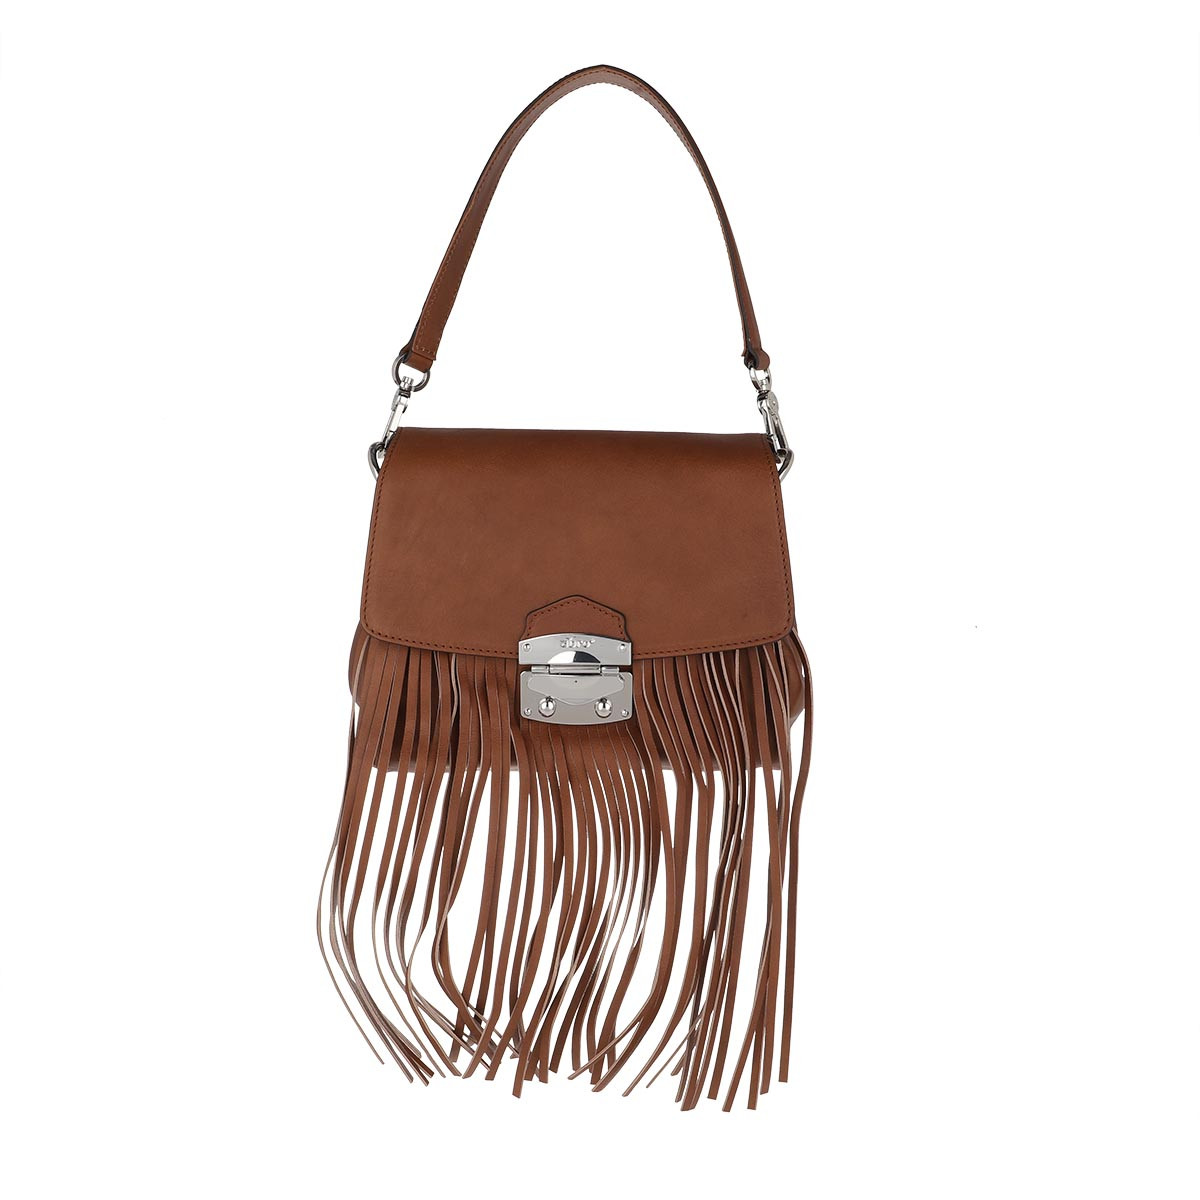 Abro Umhängetasche - Manolete Shoulder Bag Cognac - in cognac - für Damen